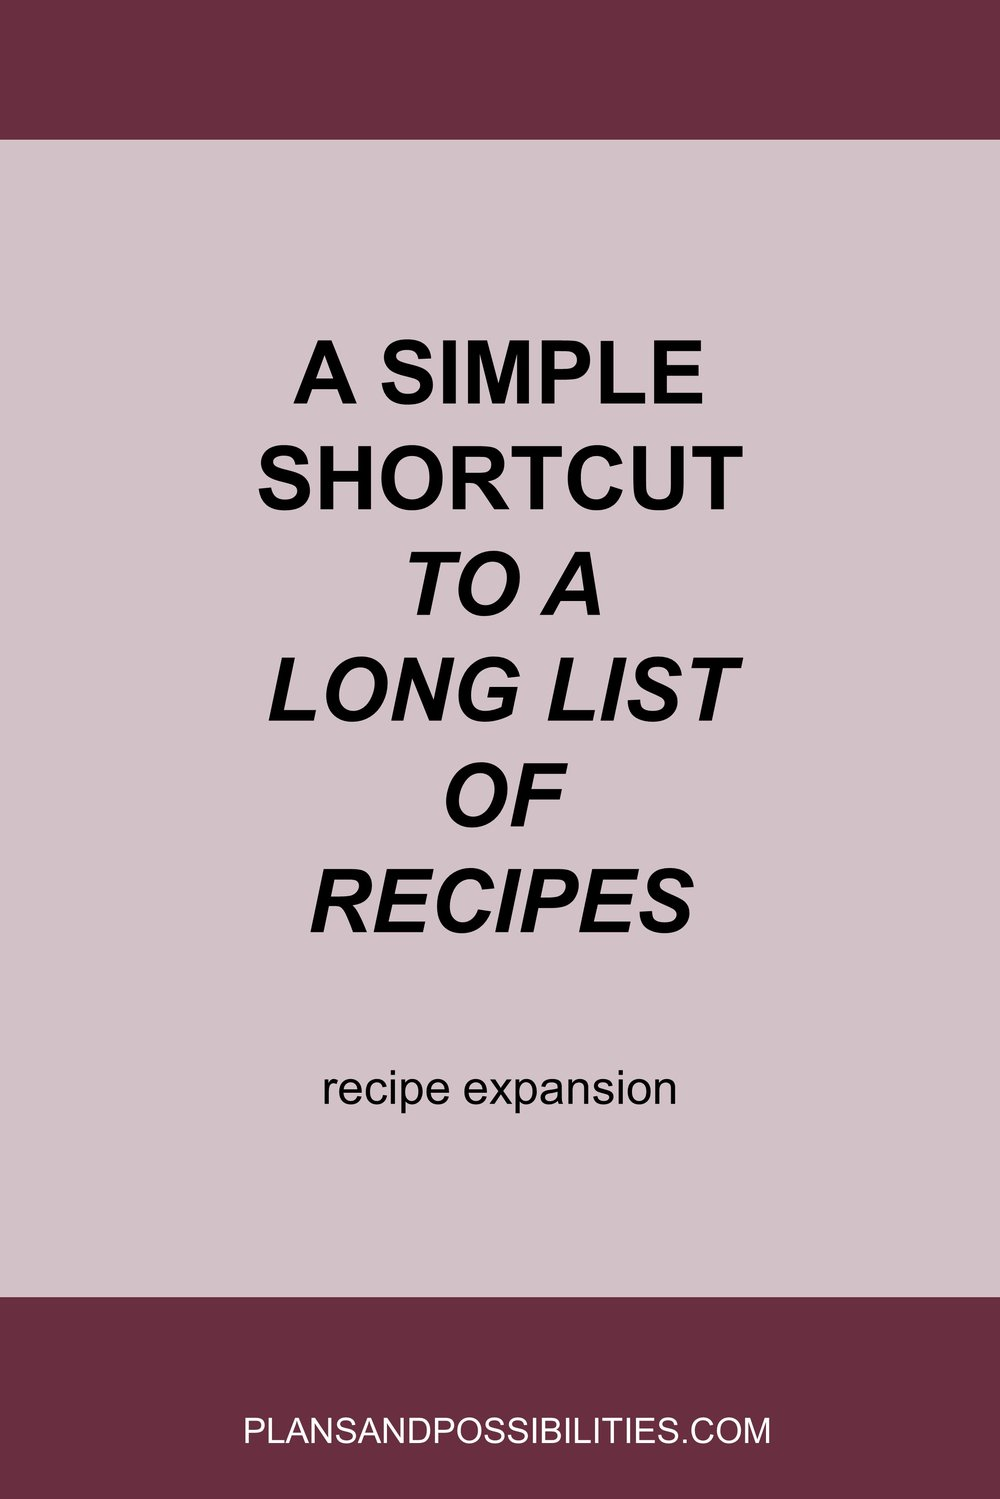 A Simple Shortcut To A Long List Of Recipes.jpg